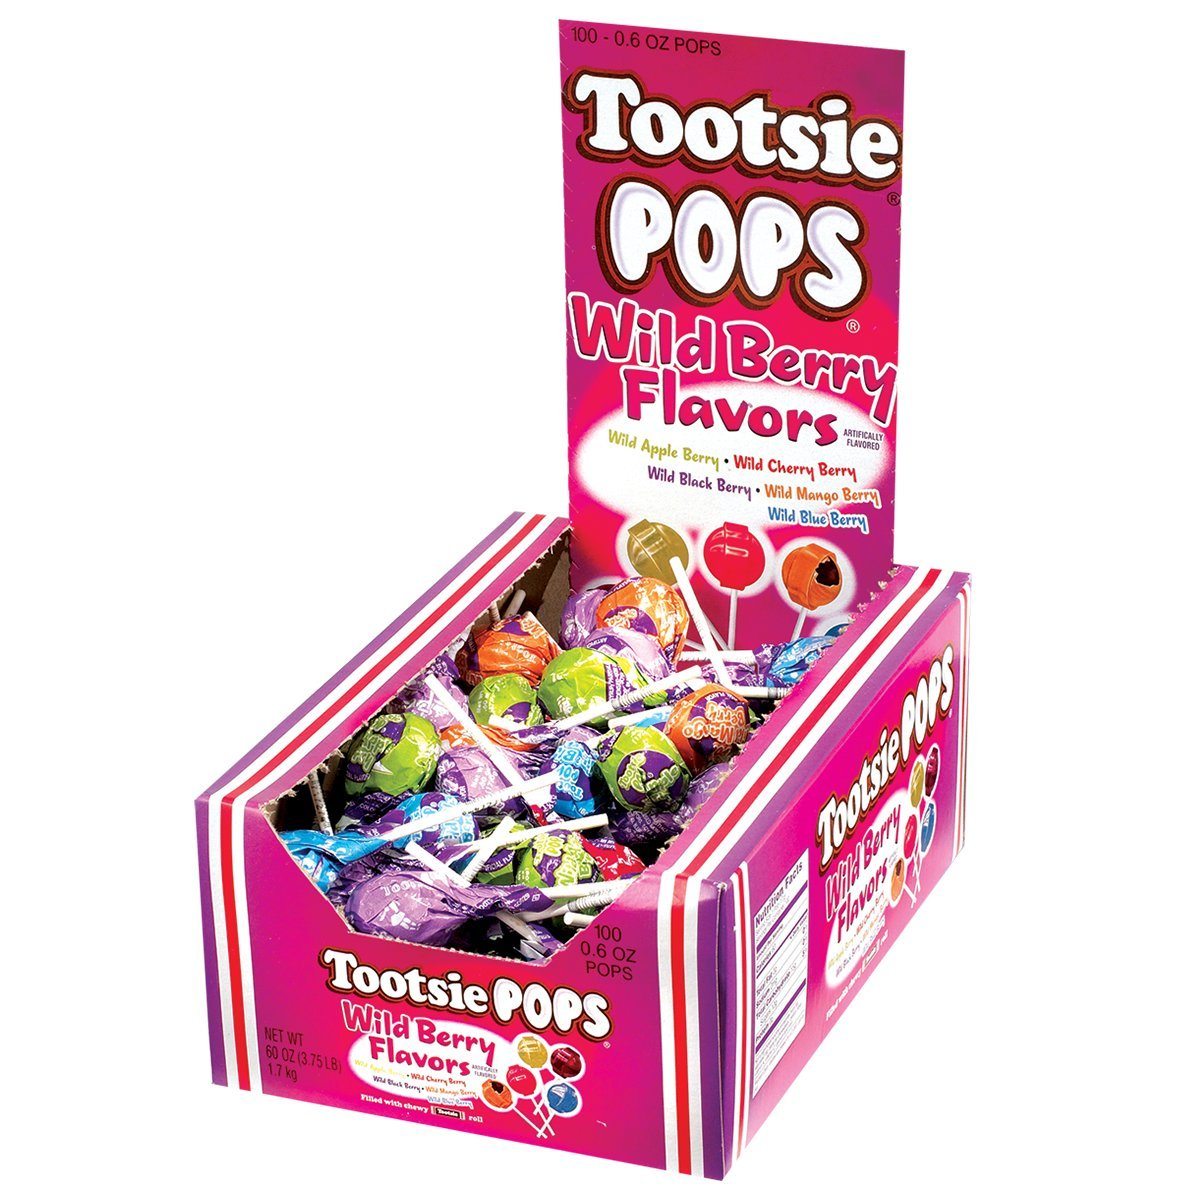 Tootsie Pops Wild Berry Flavors, 3.75 Pounds by Tootsie Roll (Image #2)